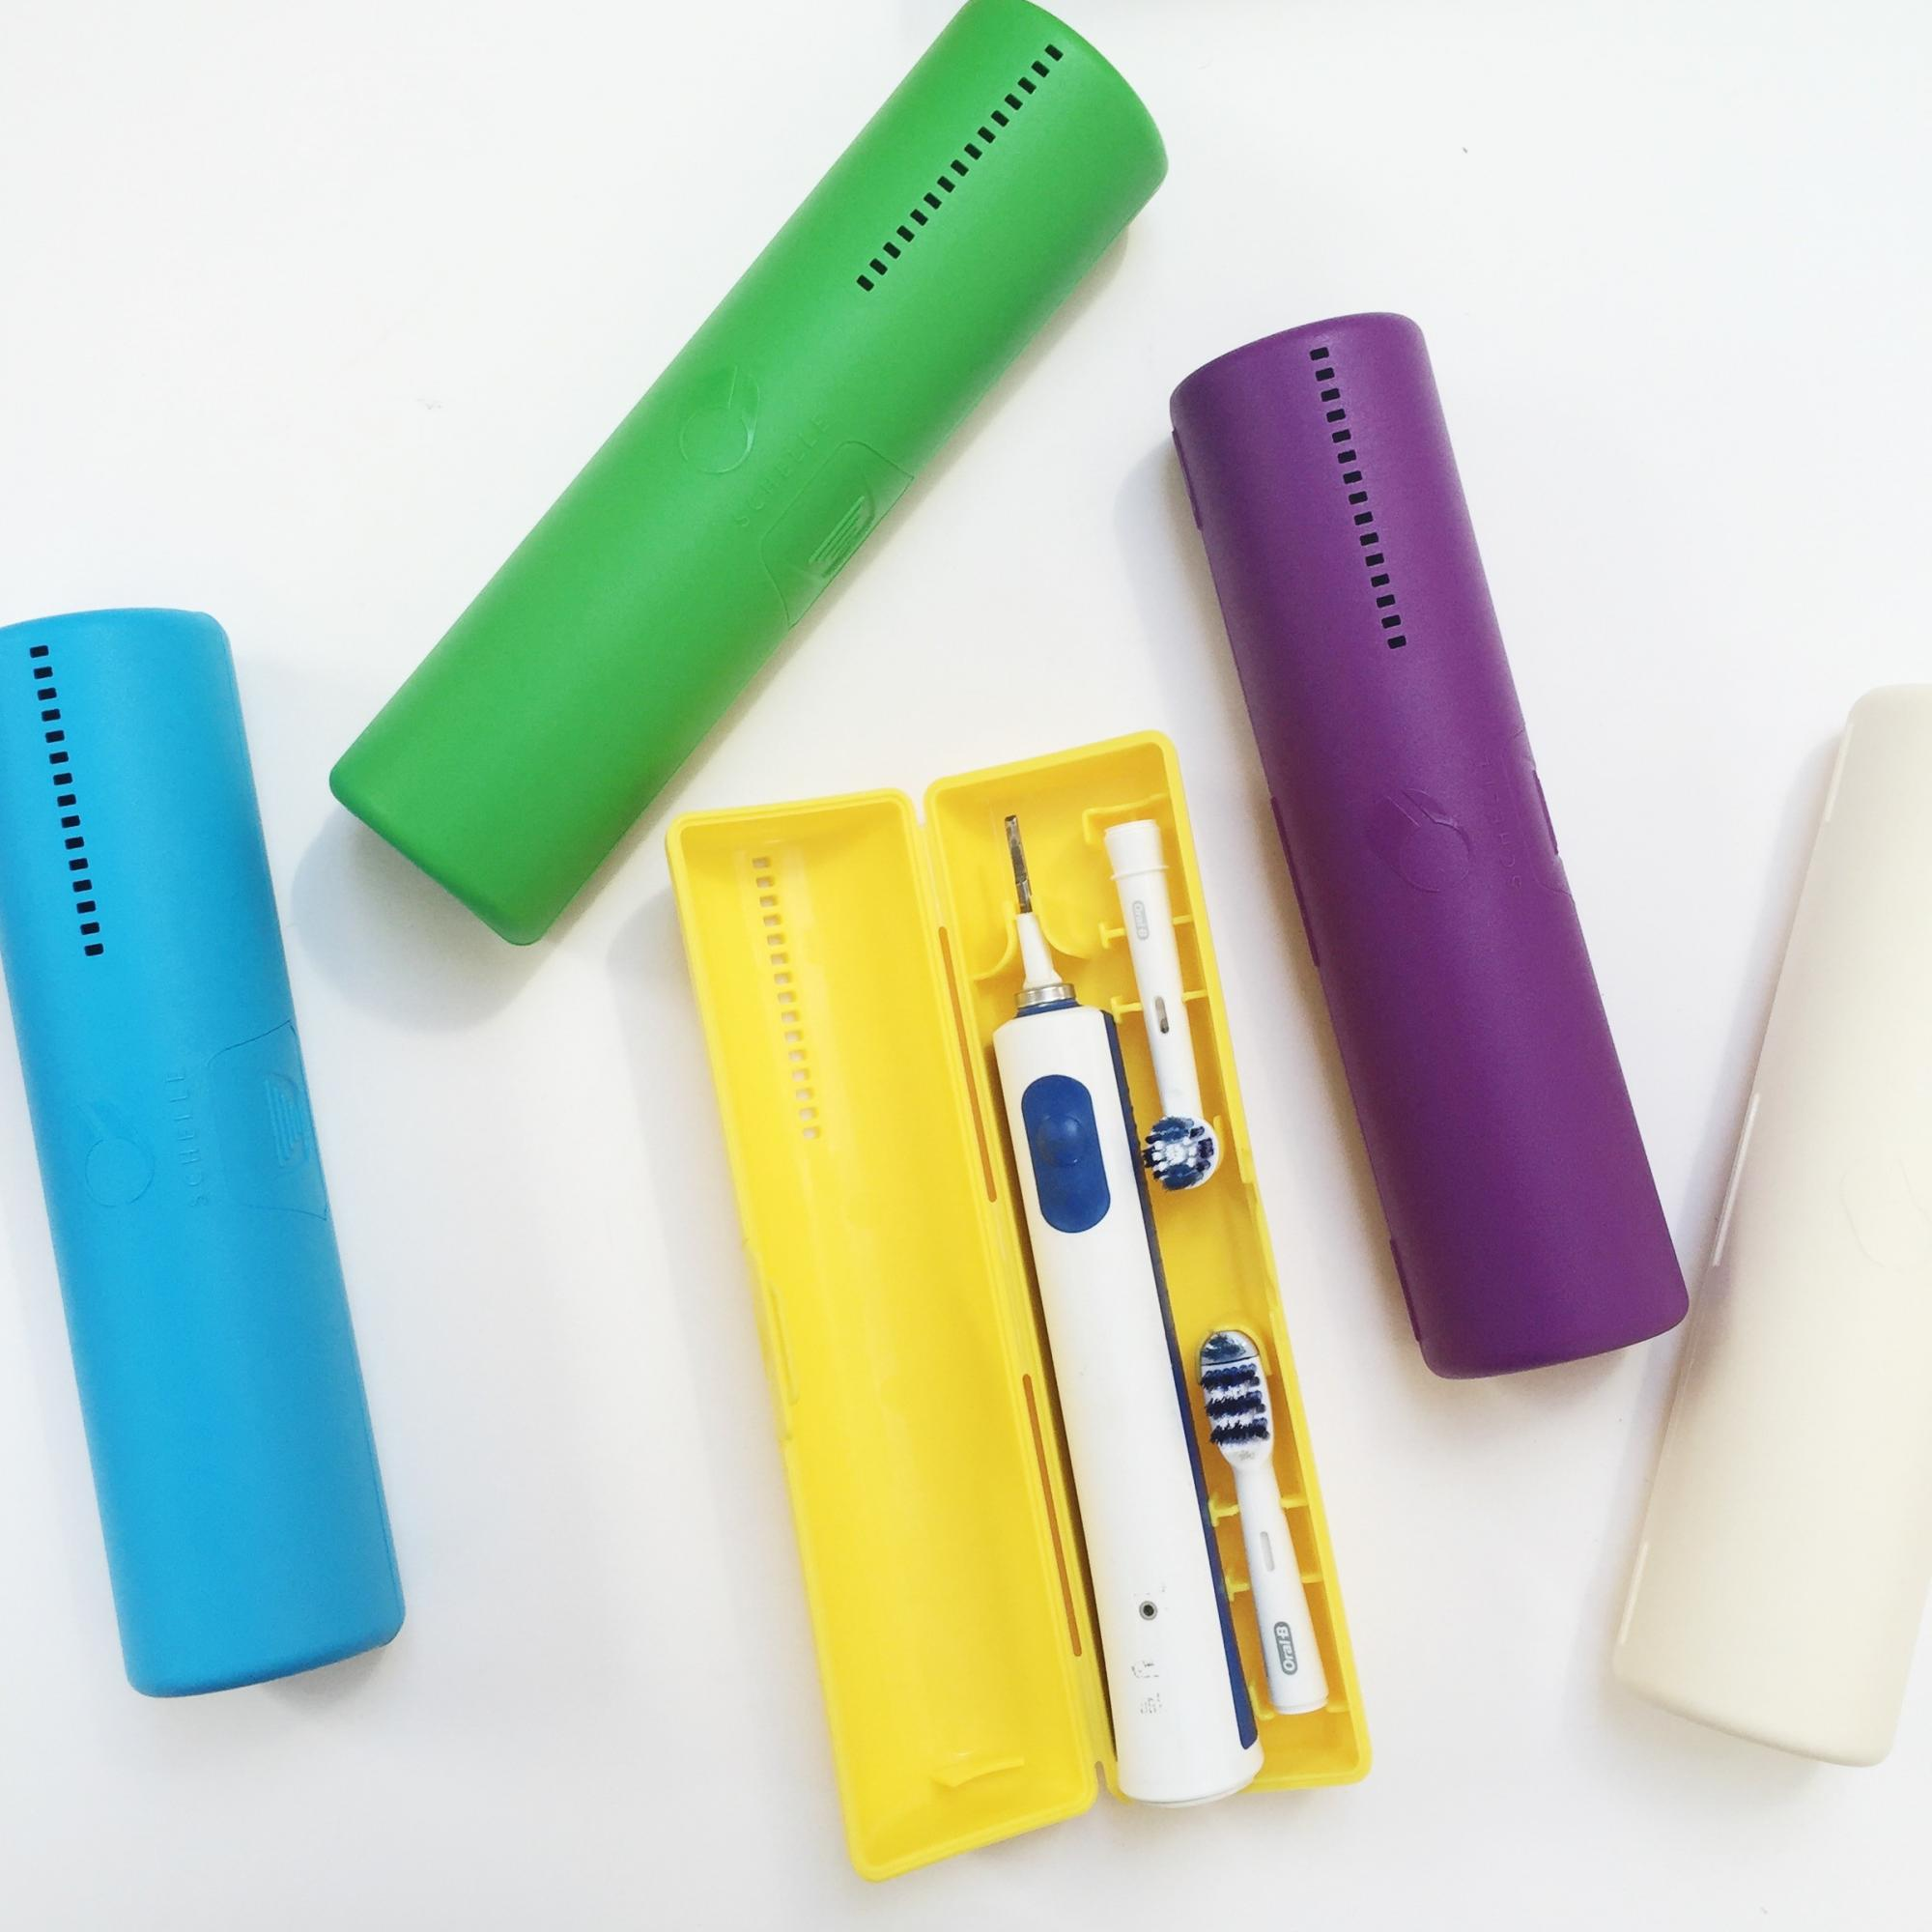 Schelle electric toothbrush case.